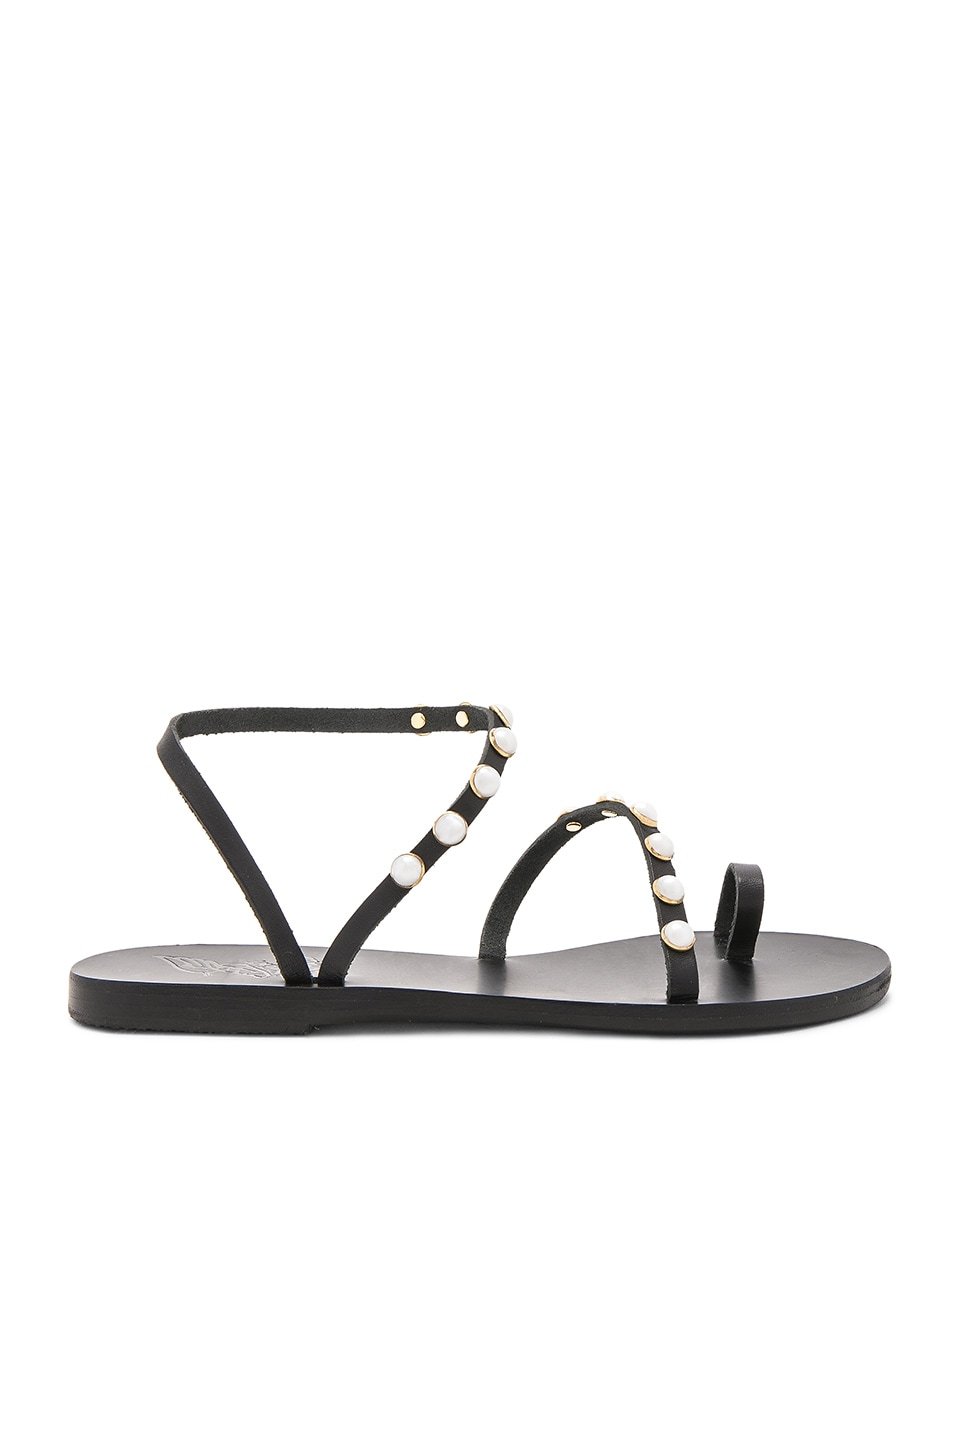 Apli Eleftheria Pearls Sandal by Ancient Greek Sandals